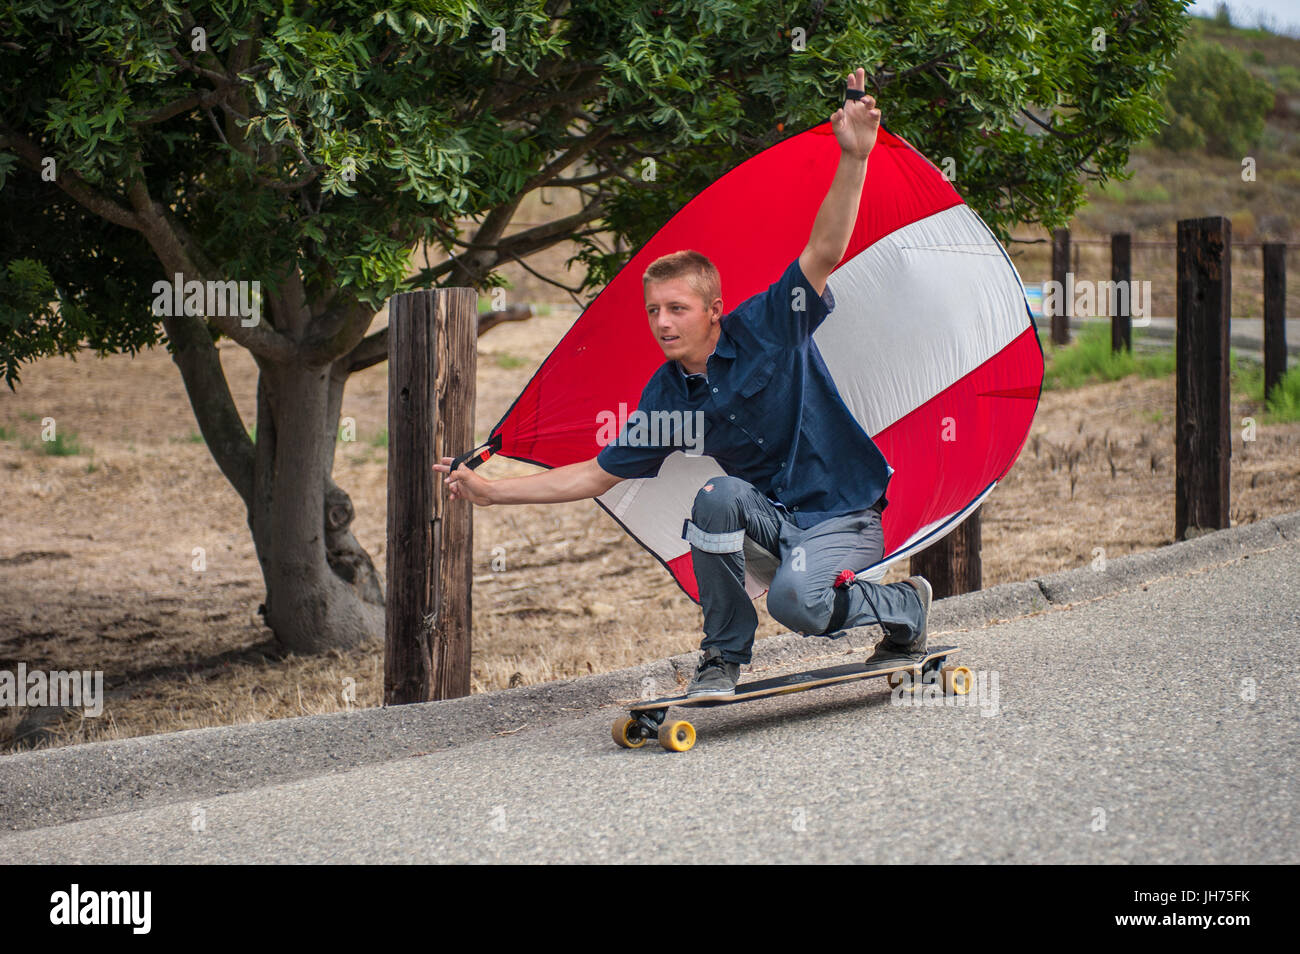 Parachute downhill skateboarder has sail full of wind as he crouches in goofy foot stance. Stock Photo